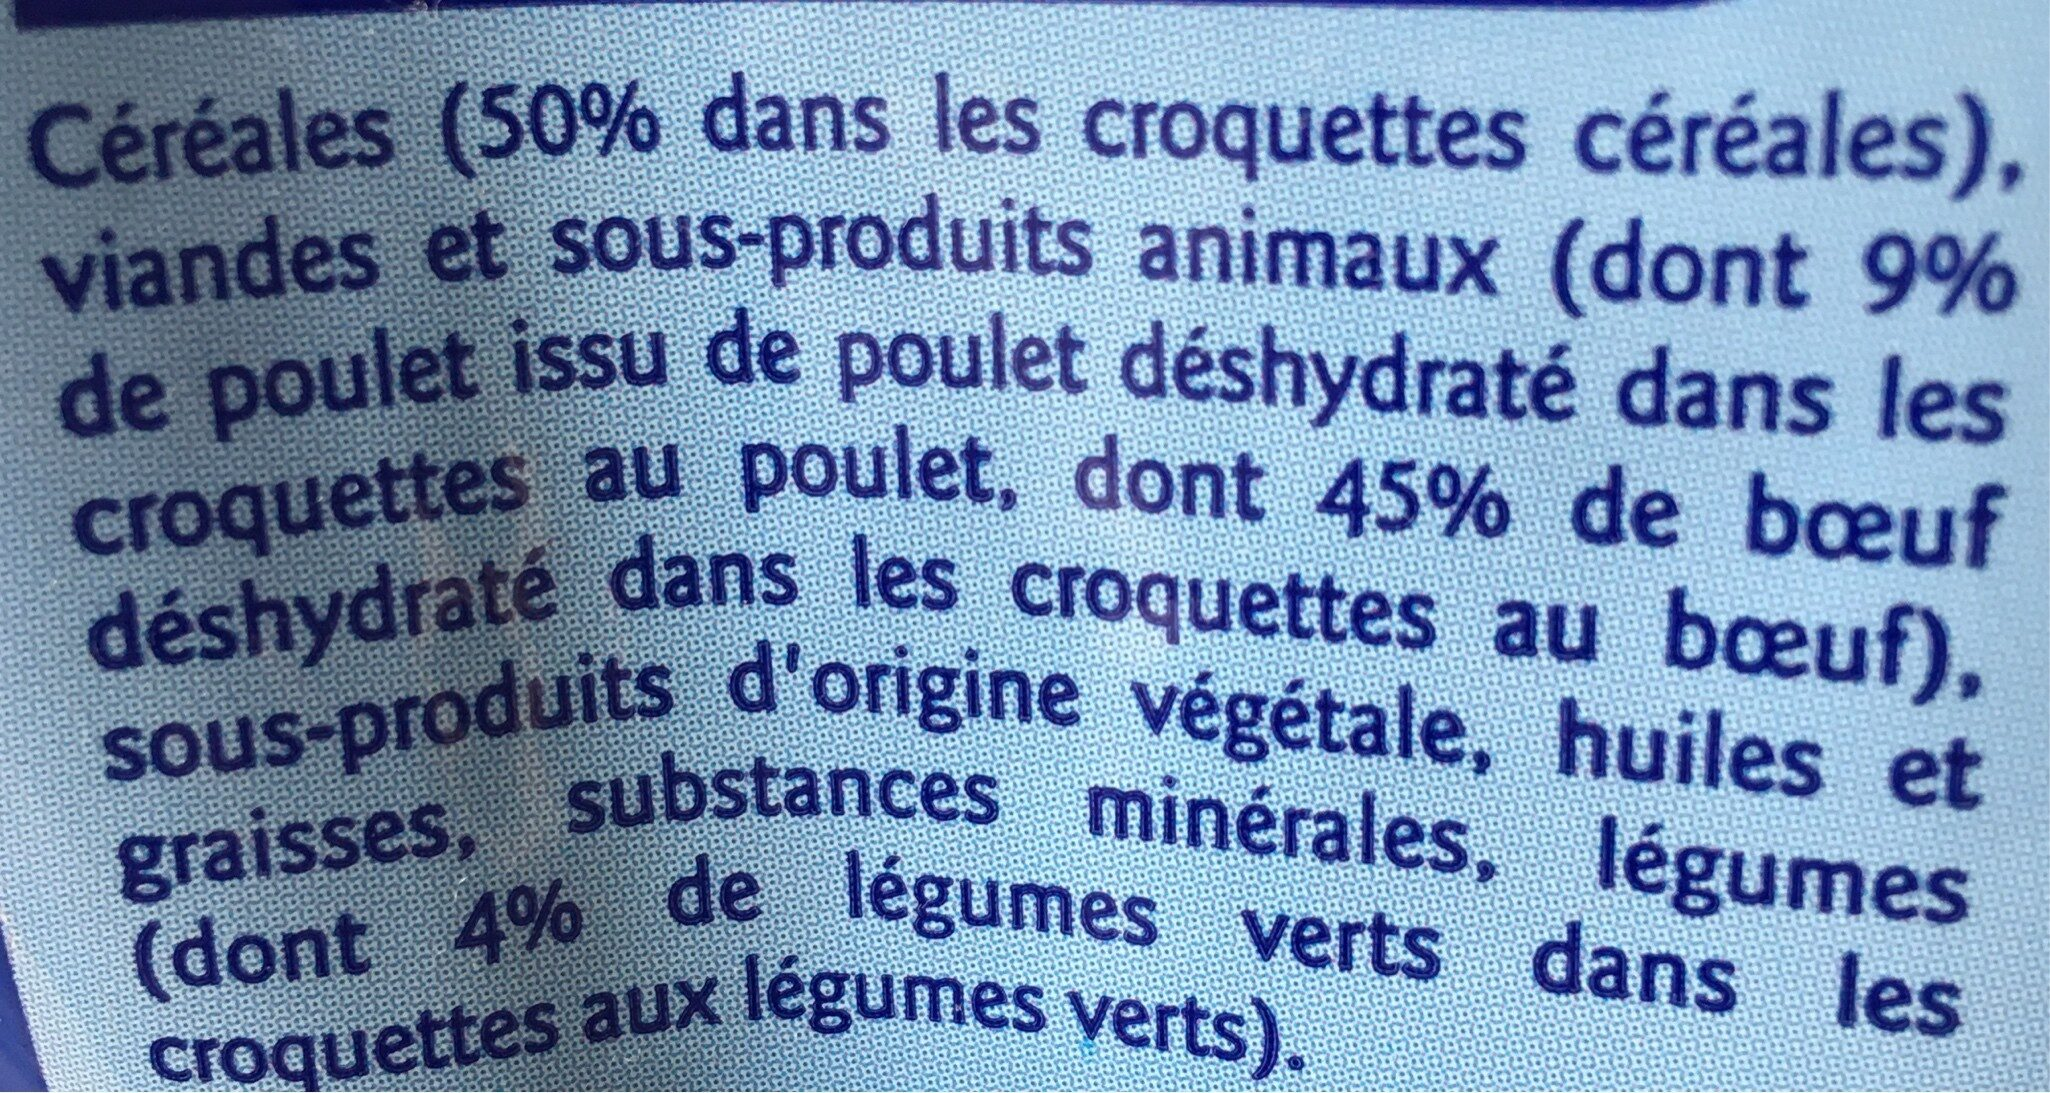 multicroquettes - Ingredients - fr